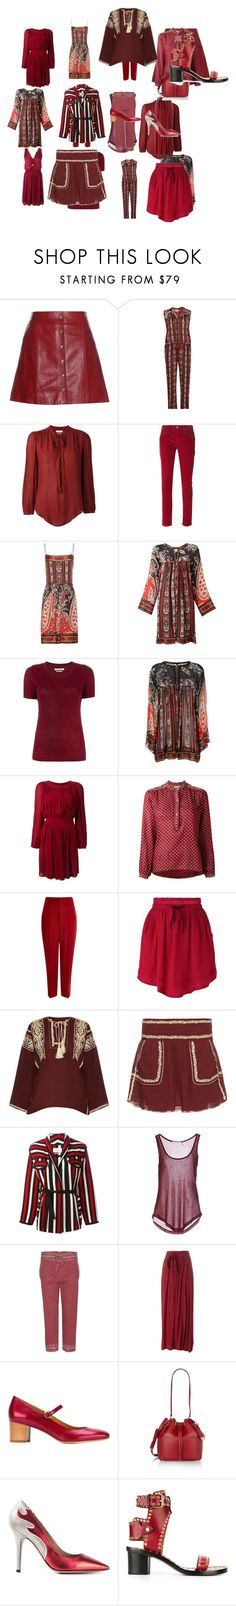 """""""Untitled #3381"""" by luciana-boneca on Polyvore featuring Étoile Isabel Marant, Isabel Marant, MICHAEL Michael Kors, women's clothing, women, female, woman, misses and juniors"""